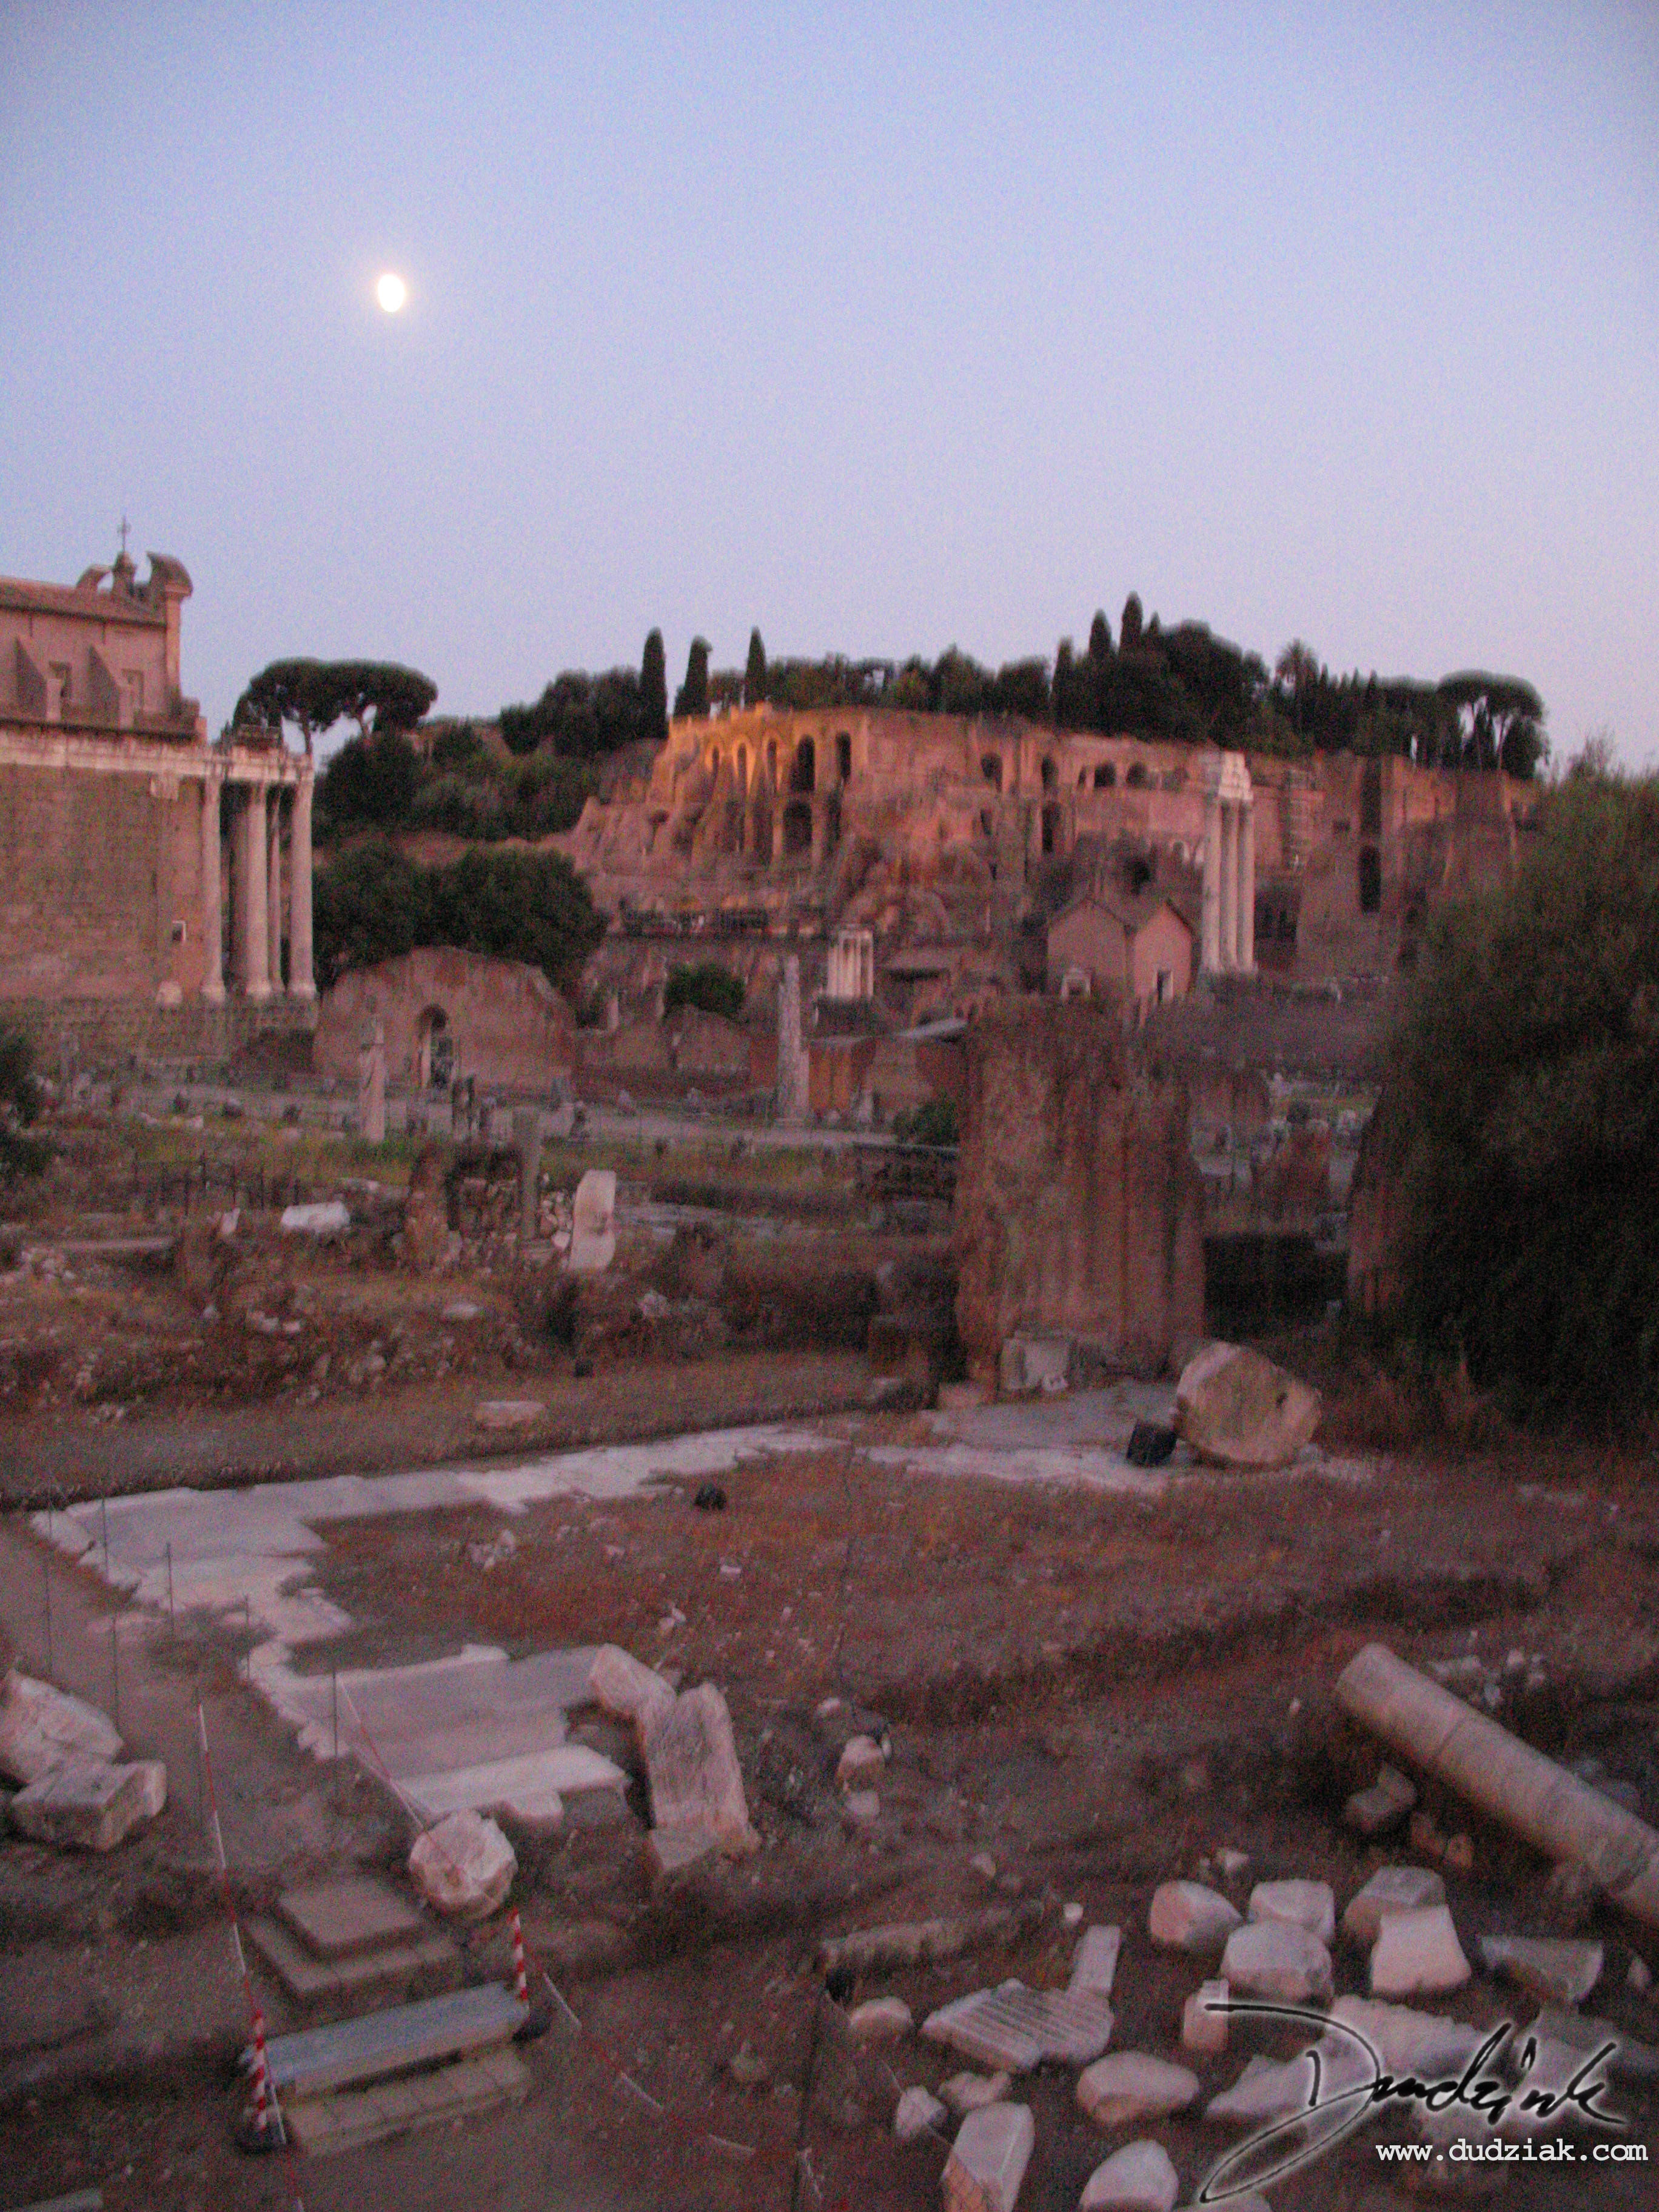 dusk,  moonlight,  italy,  rome,  roman forum